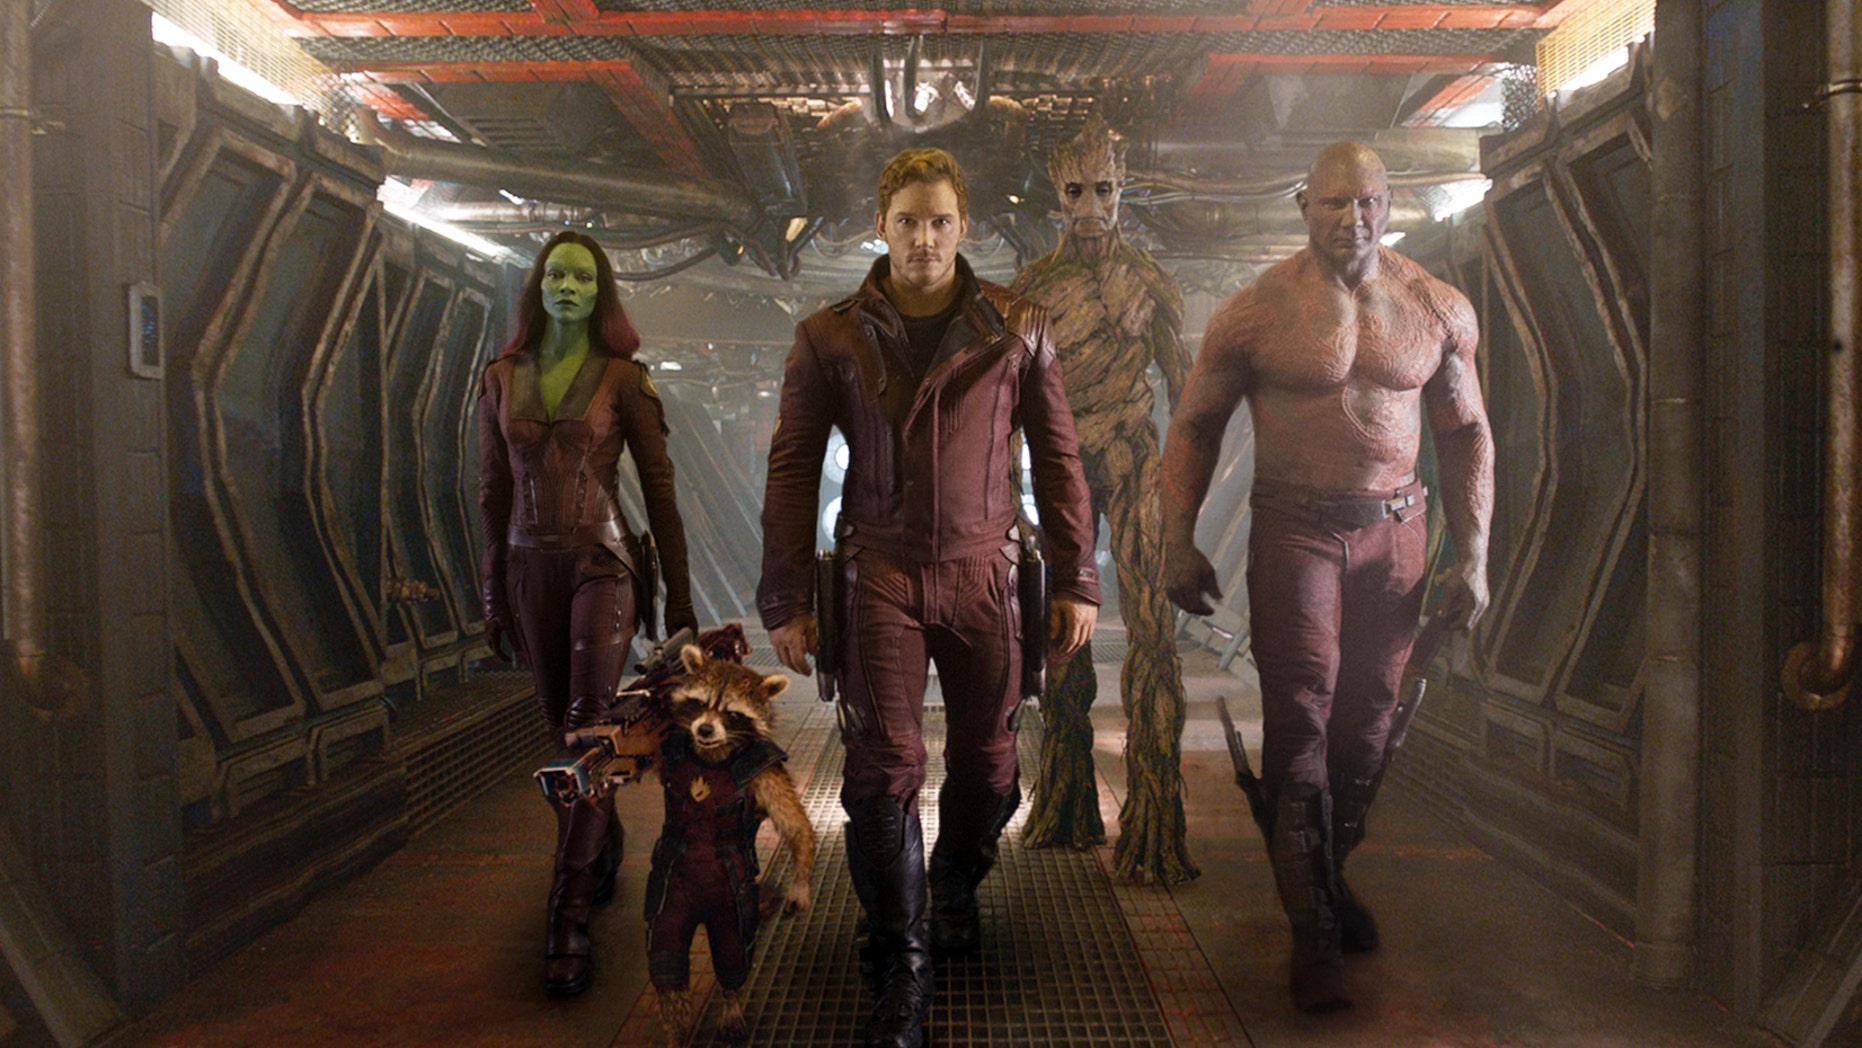 """Zoe Saldana, the character Rocket Racoon, voiced by Bradley Cooper, Chris Pratt, the character Groot, voiced by Vin Diesel and Dave Bautista in a scene from """"Guardians Of The Galaxy."""""""